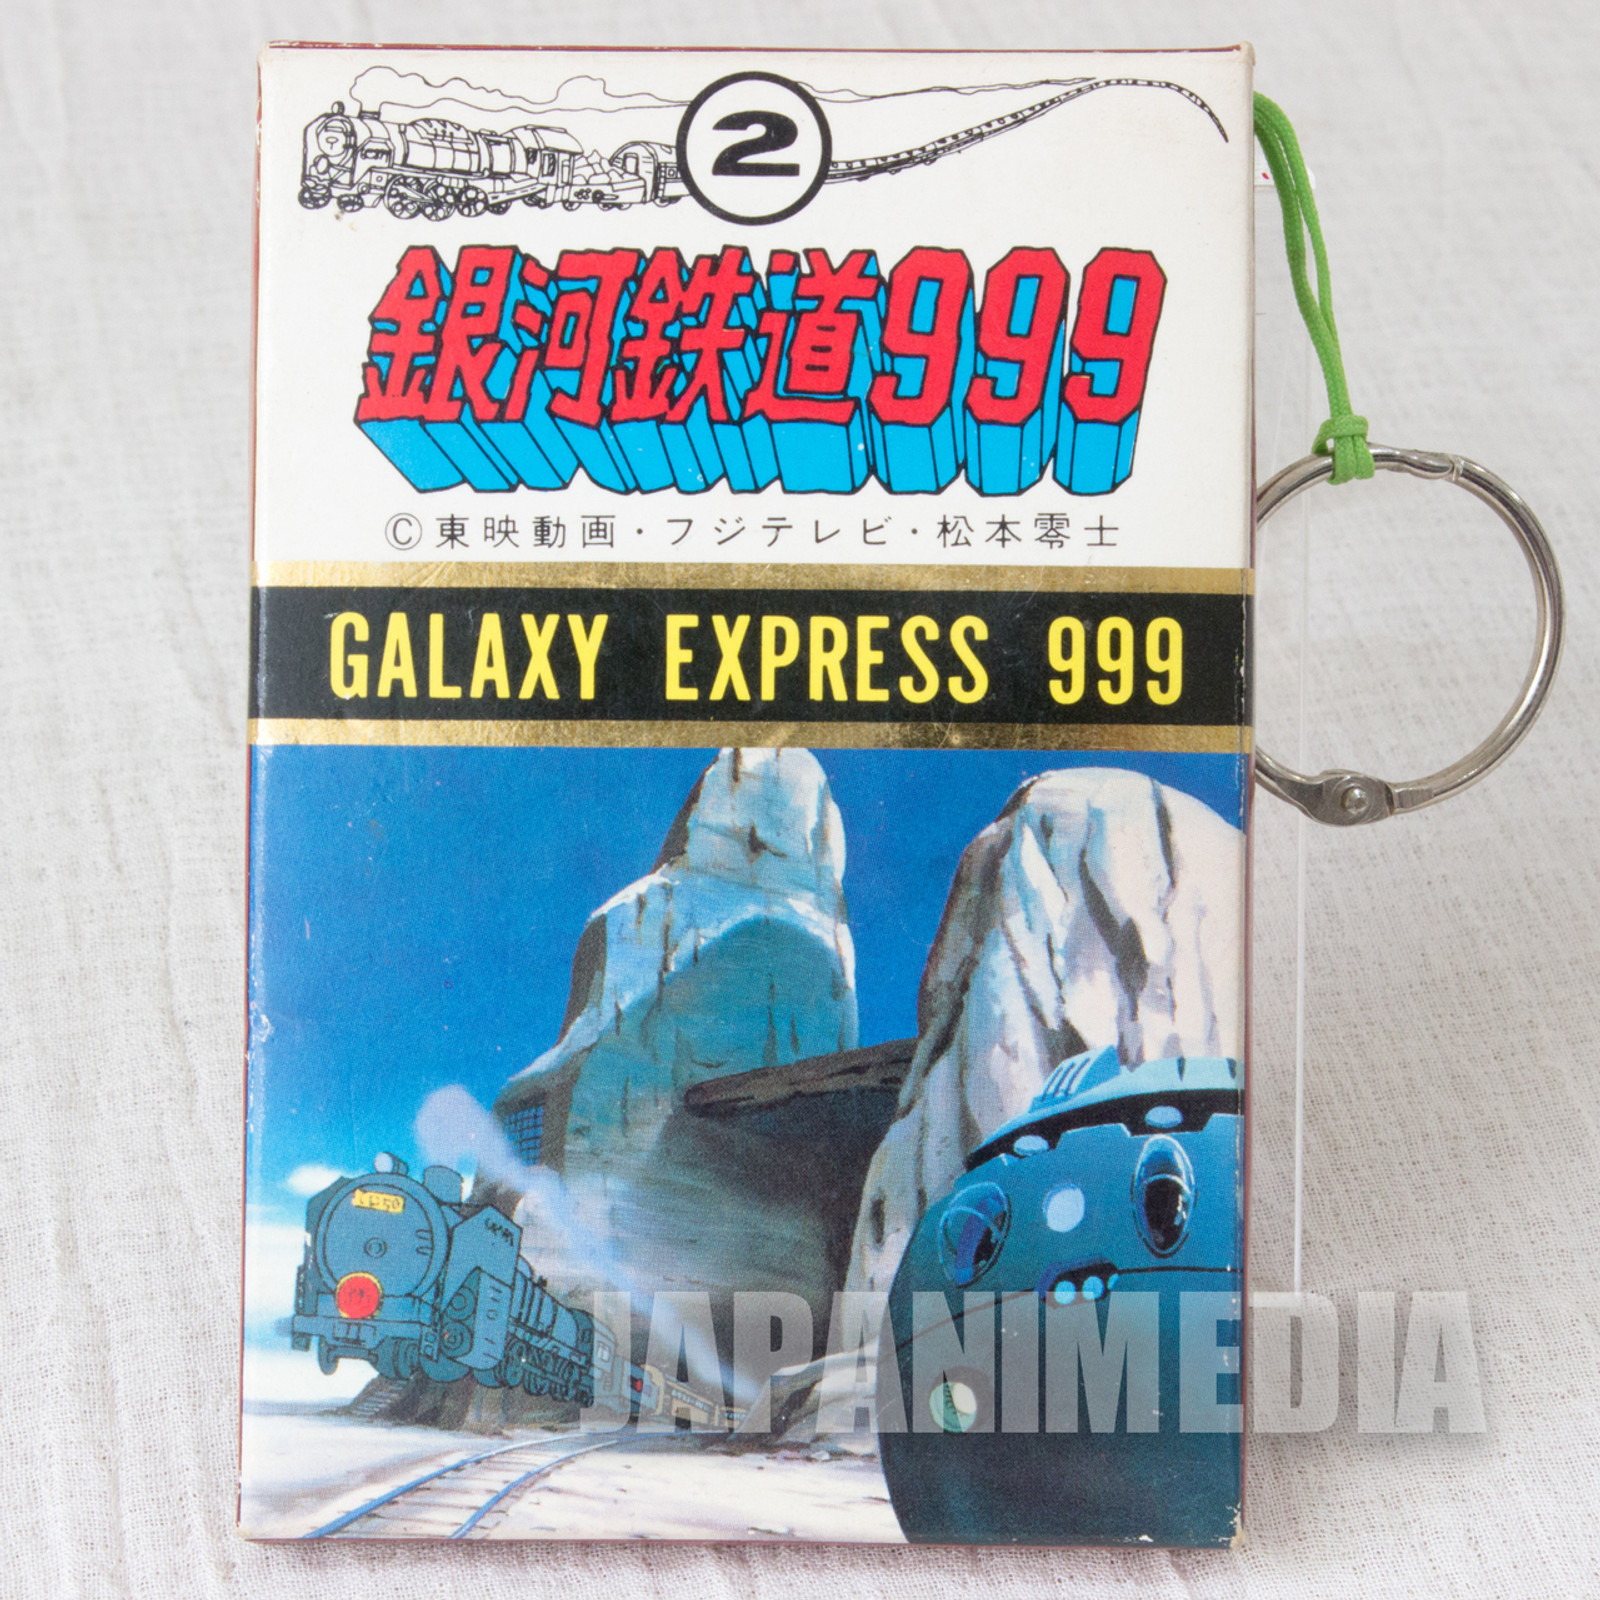 Retro RARE!! Galaxy Express 999 Plastic Card Set #2 JAPAN ANIME